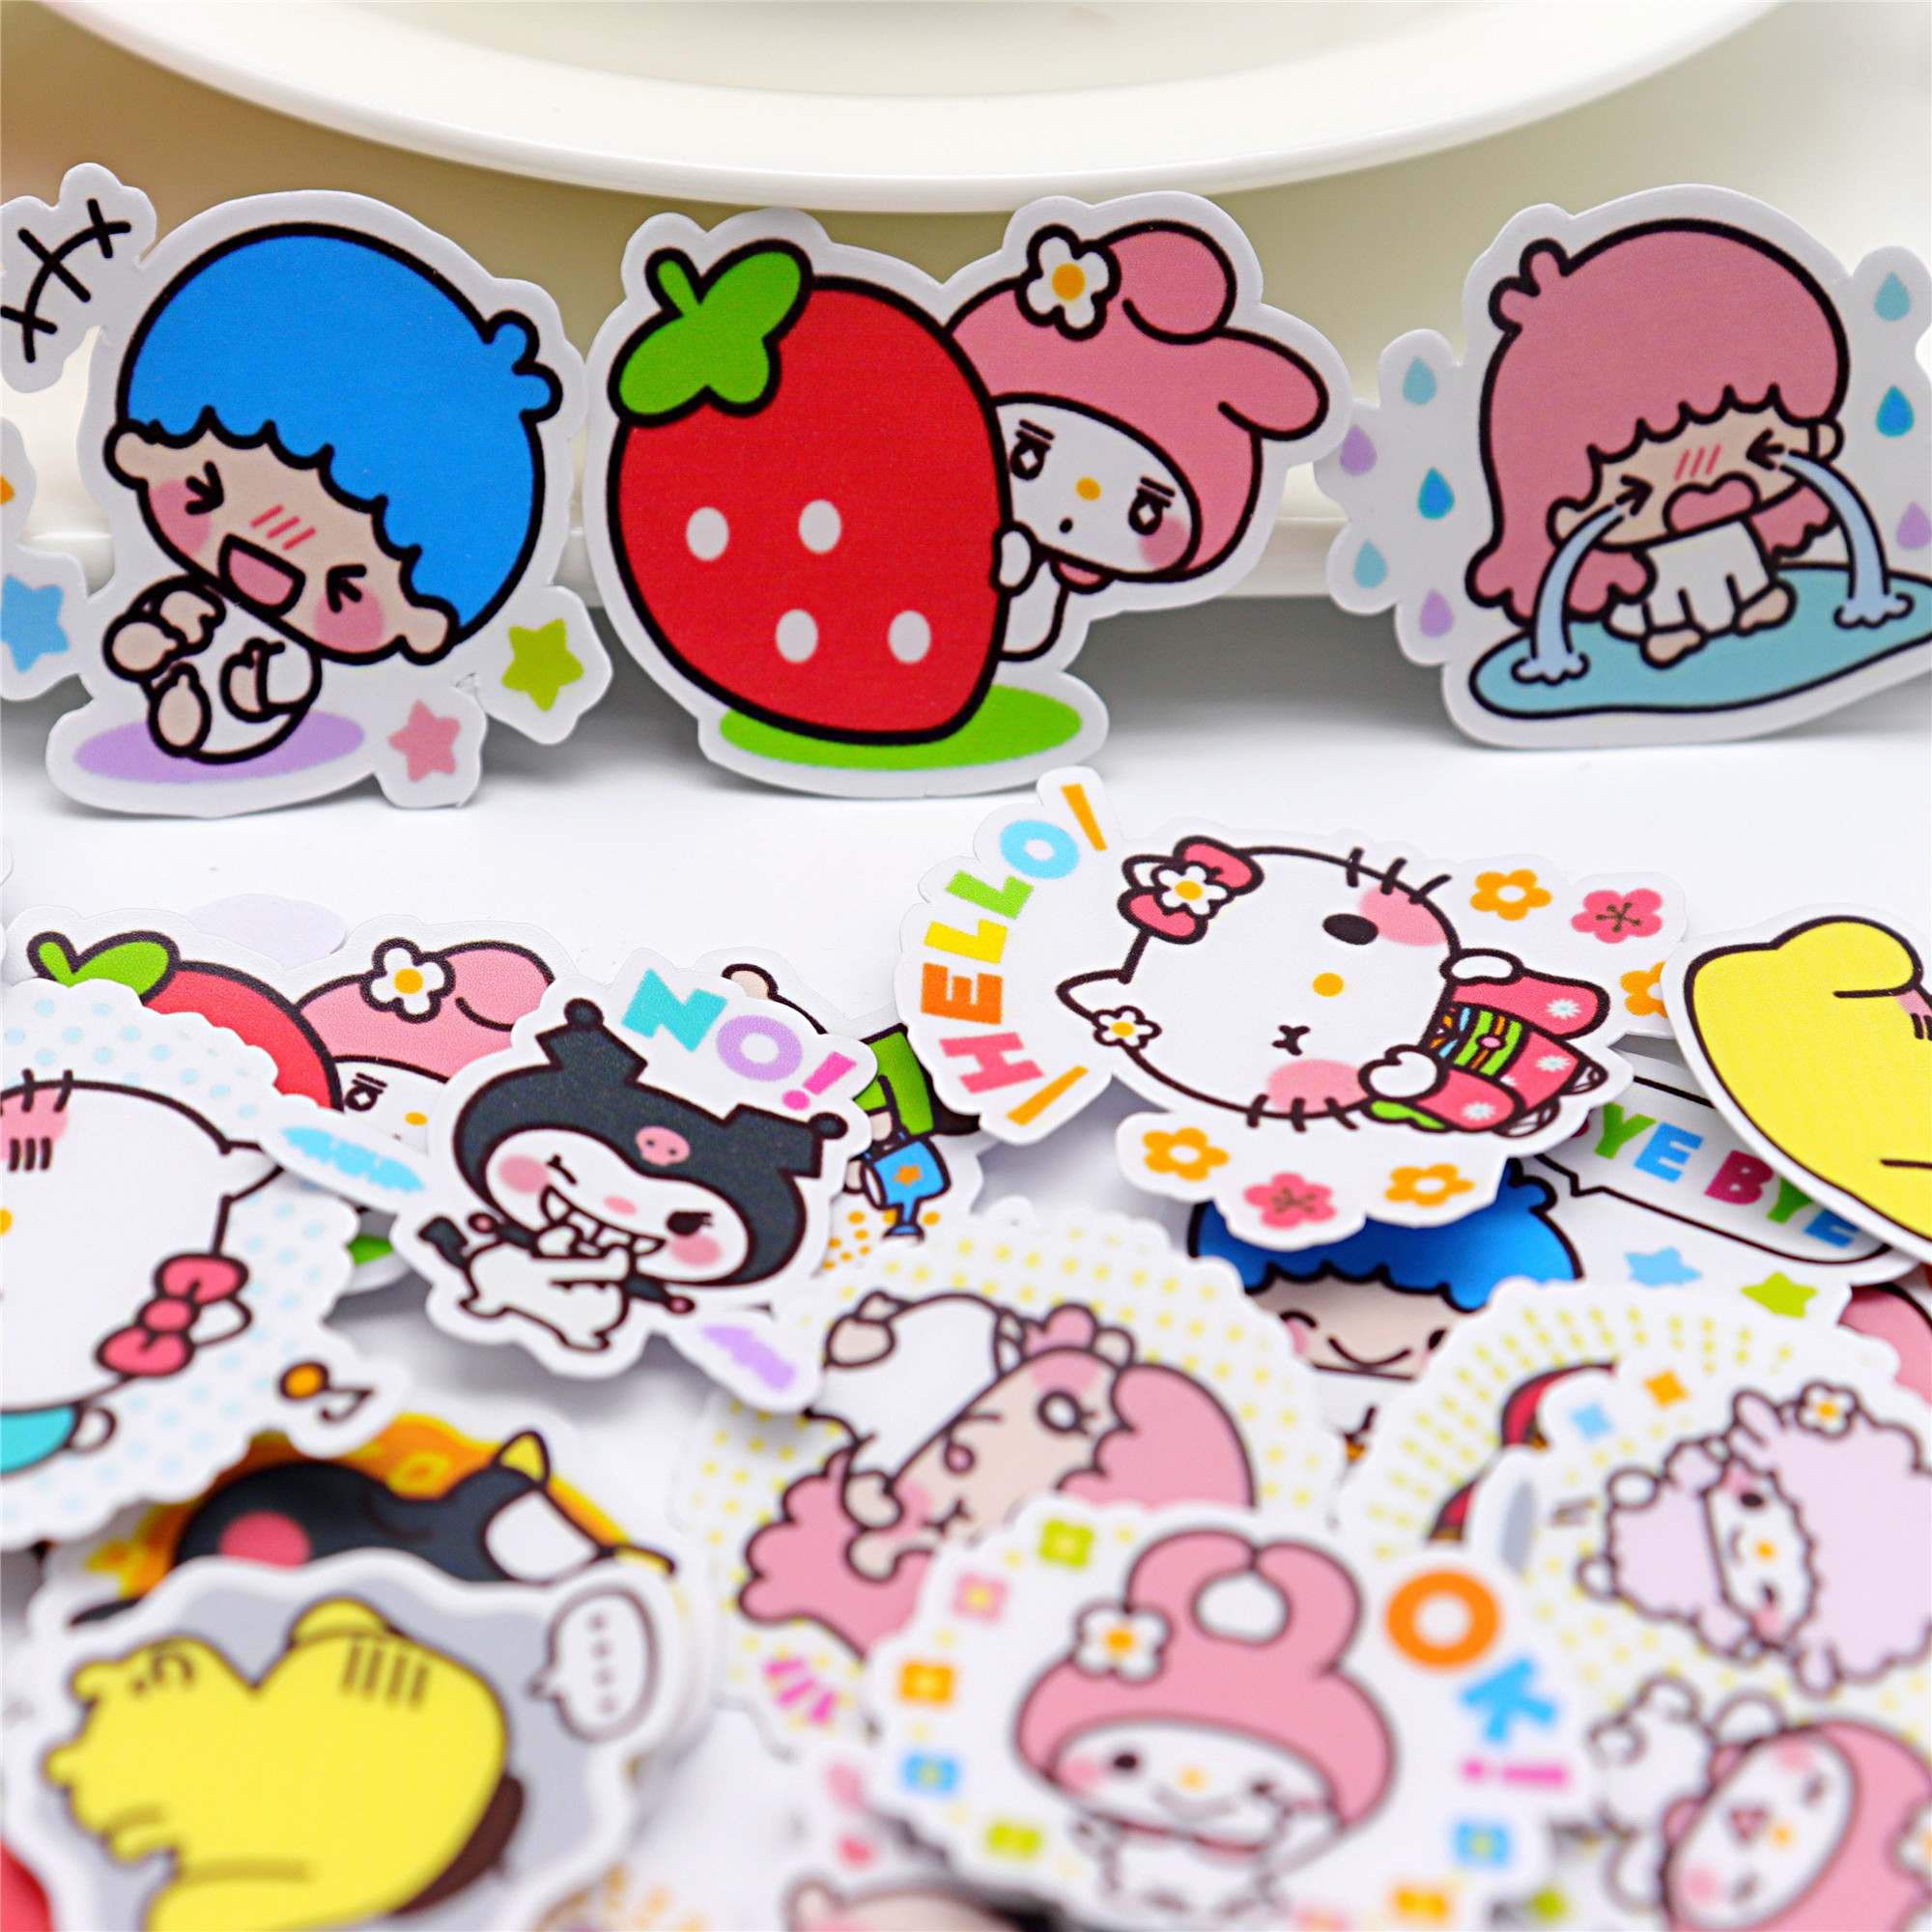 40pcs Creative Kawaii Self-made Love  Girl Stickers Beautiful Stickers /decorative Sticker /DIY Craft Photo Albums